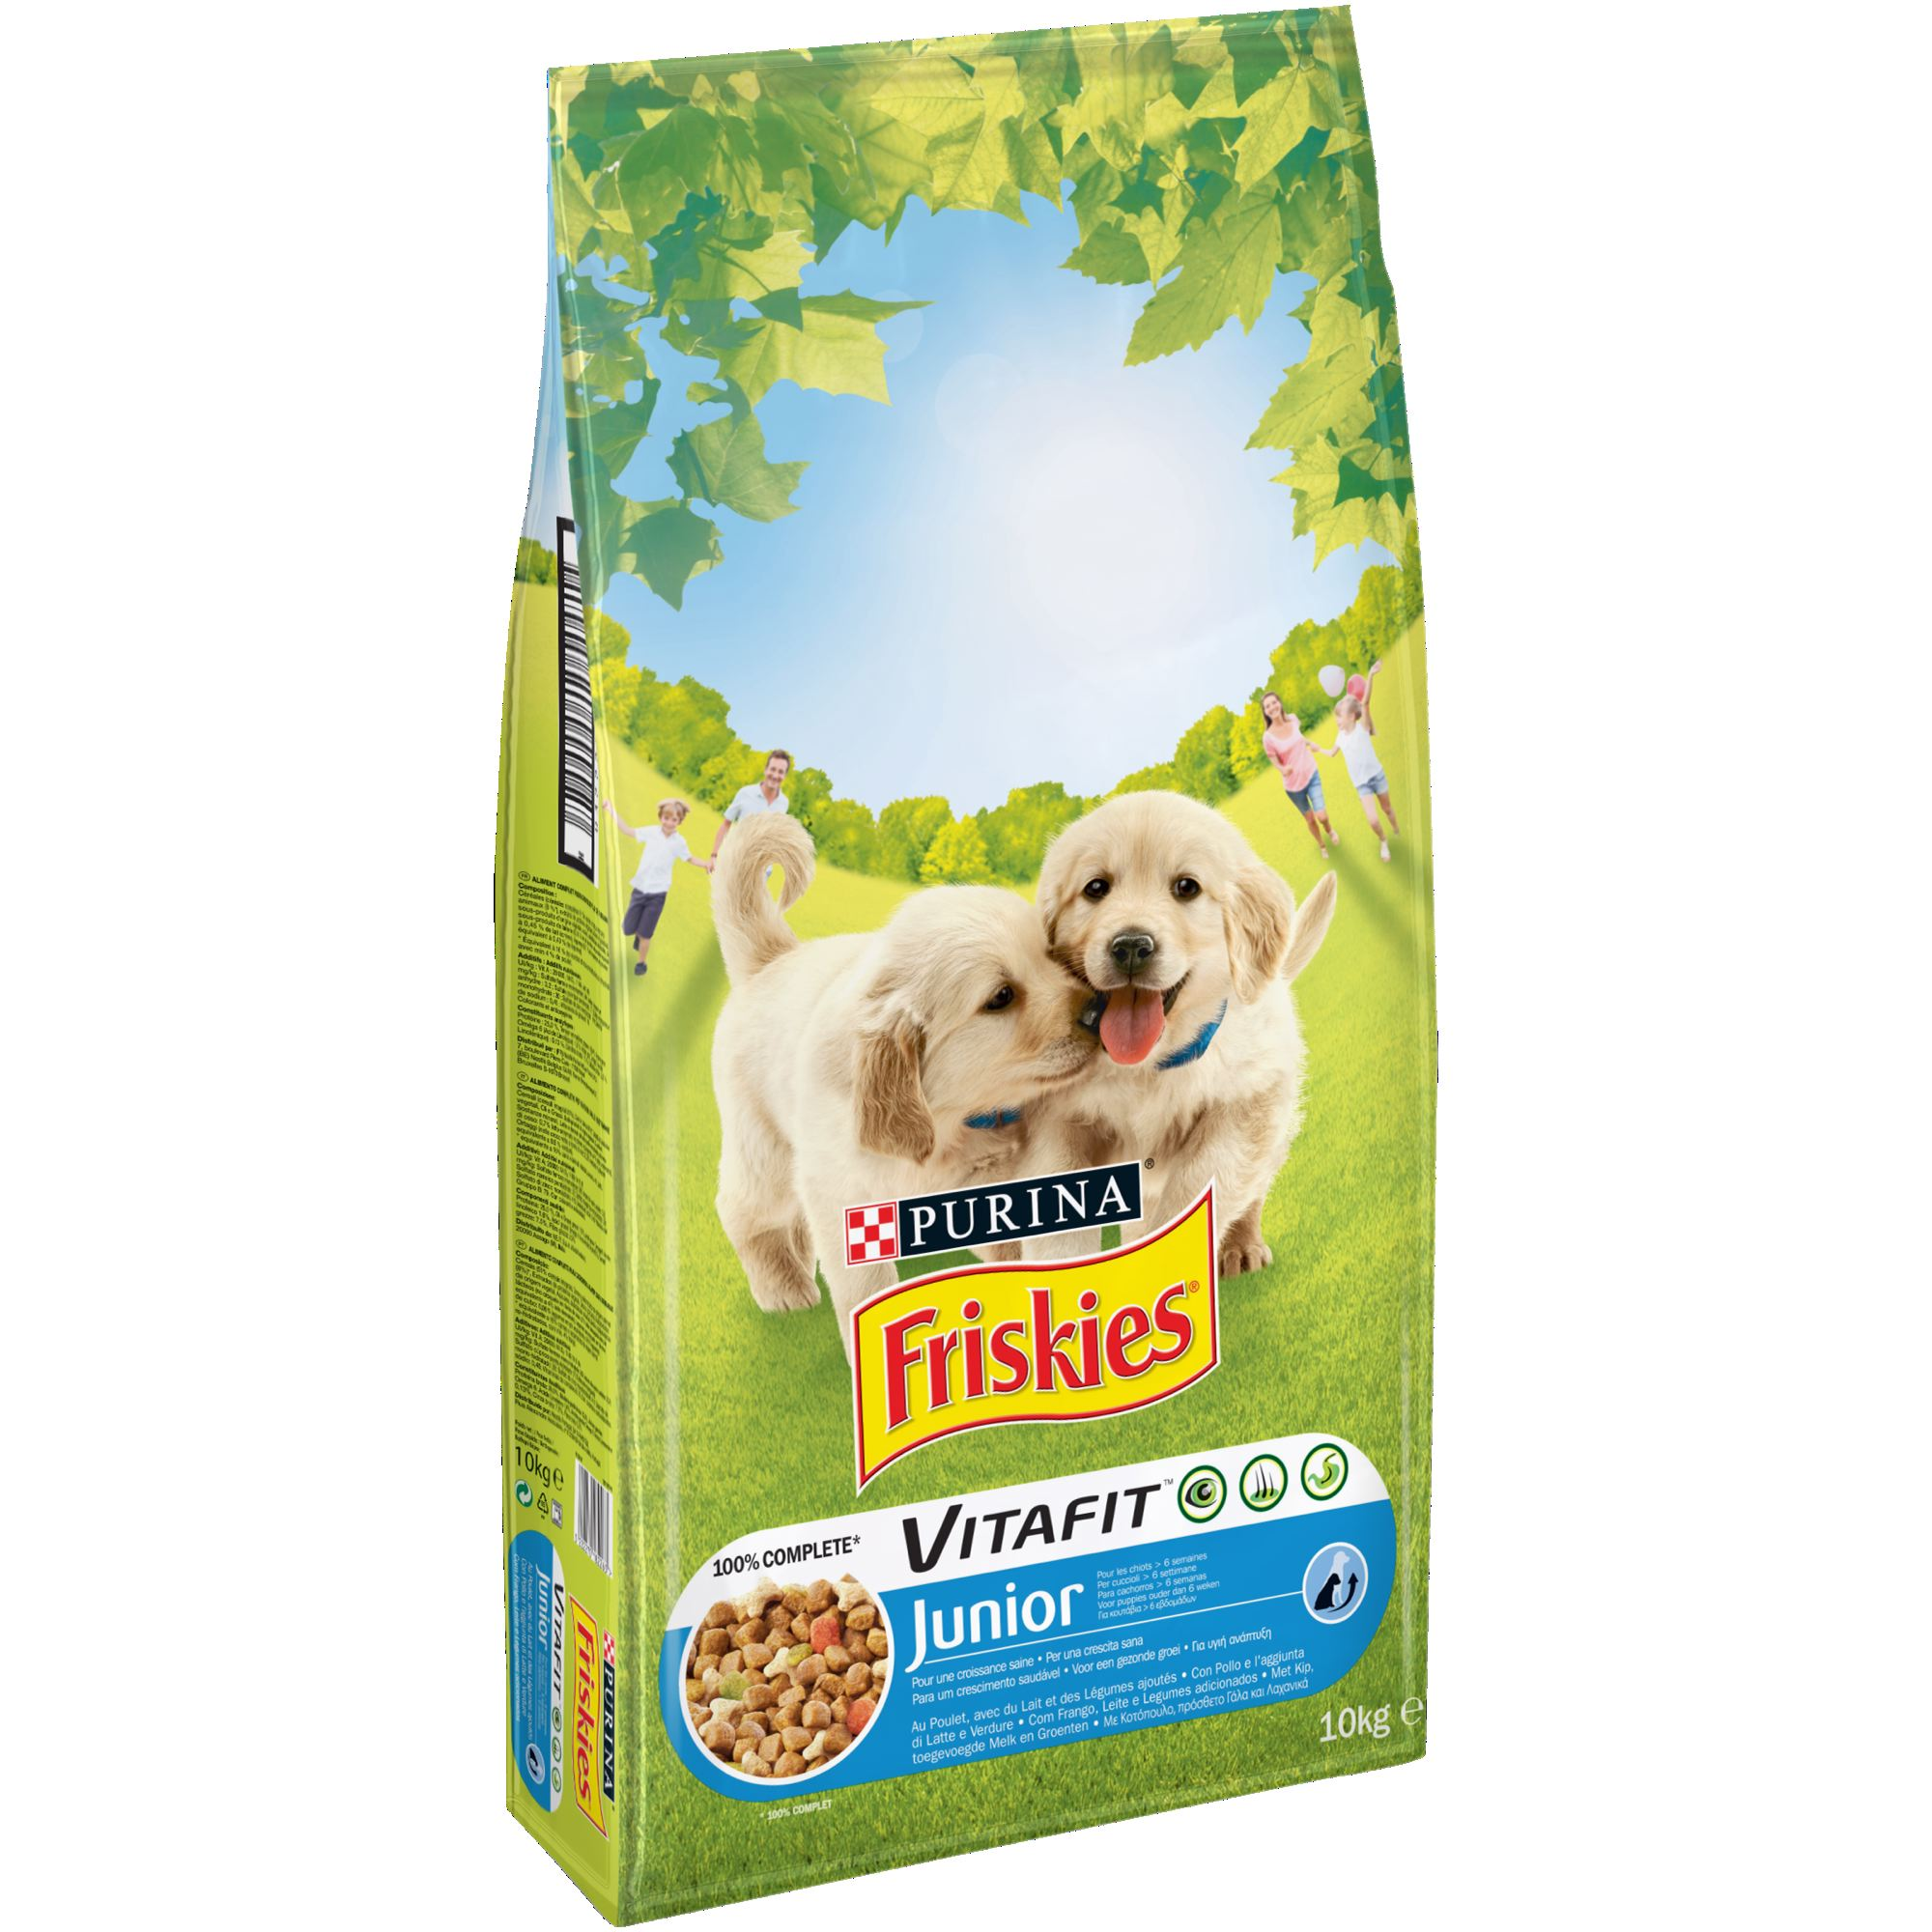 Is Friskies A Healthy Food Option For My Cat